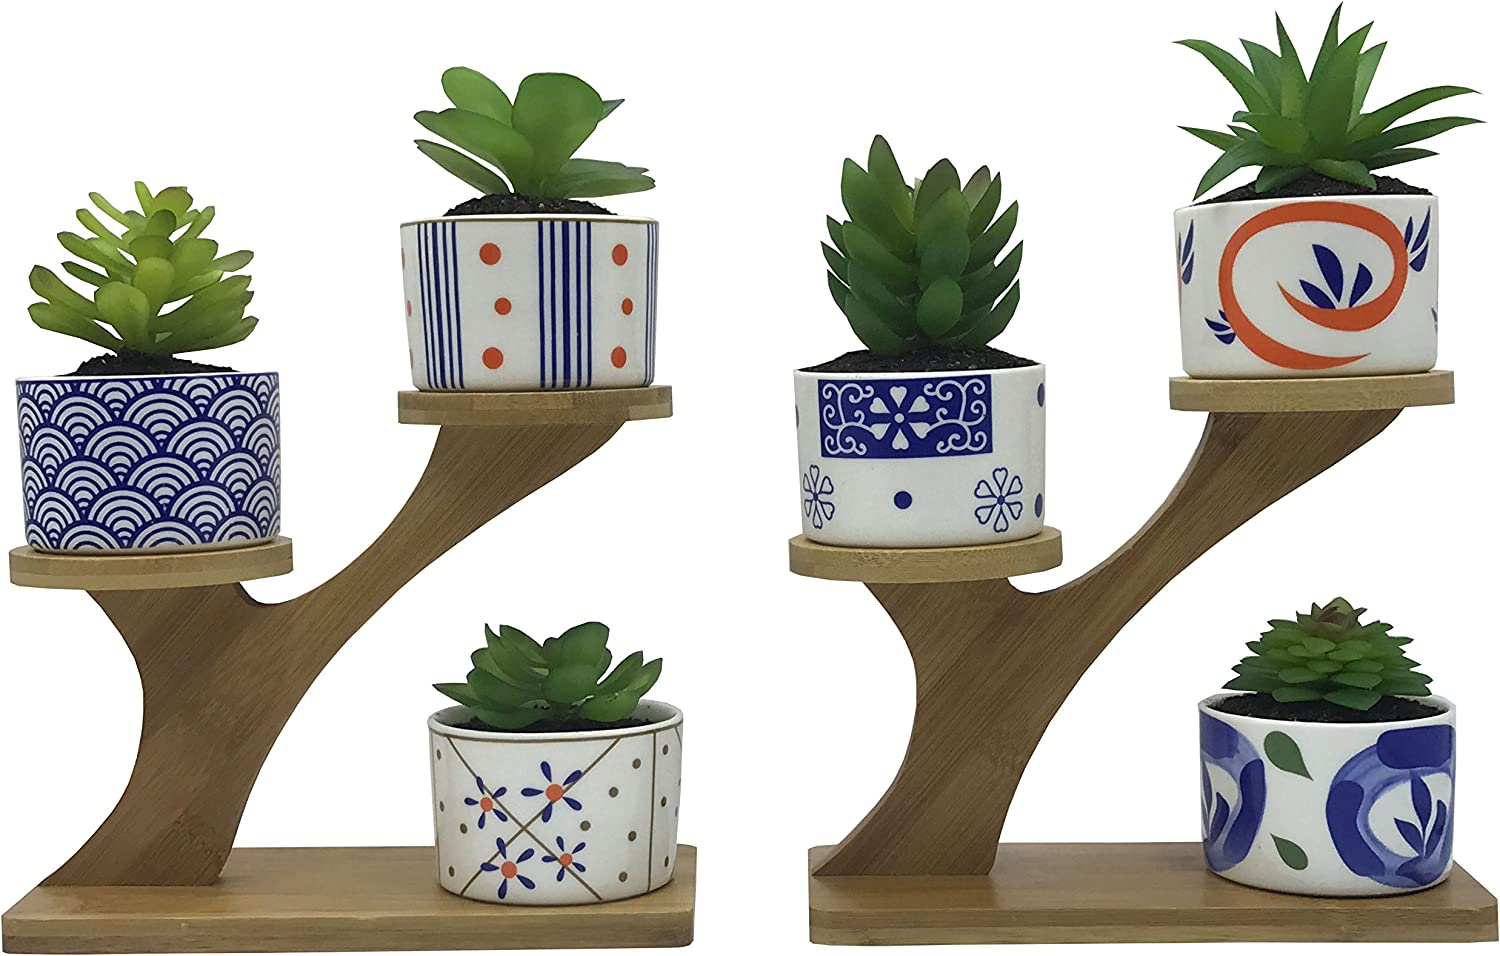 6 PCS Coloful Japanese Style Ceramic Succulent Plant Pots, with 2 PCS 3 Tier Treetop Shaped Bamboo Flower Pot Stands Holder Plants Not Included